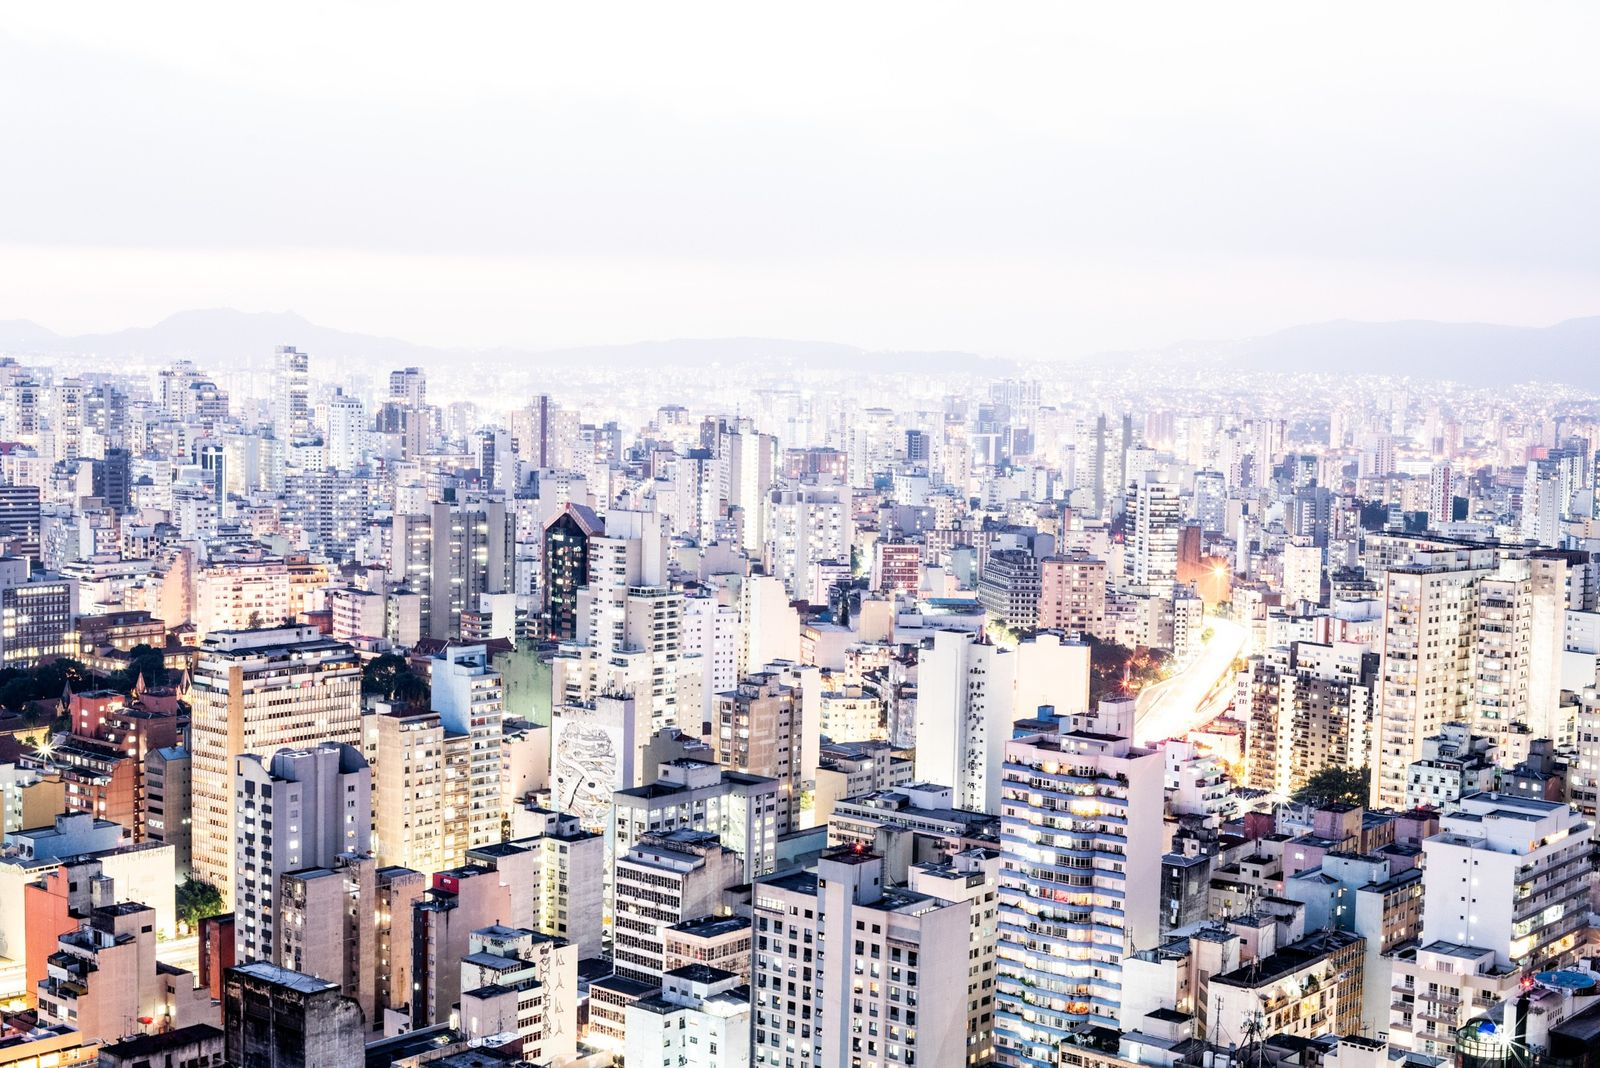 A long camera exposure taken from the Copan's rooftop casts the São Paulo skyline in watercolor ...